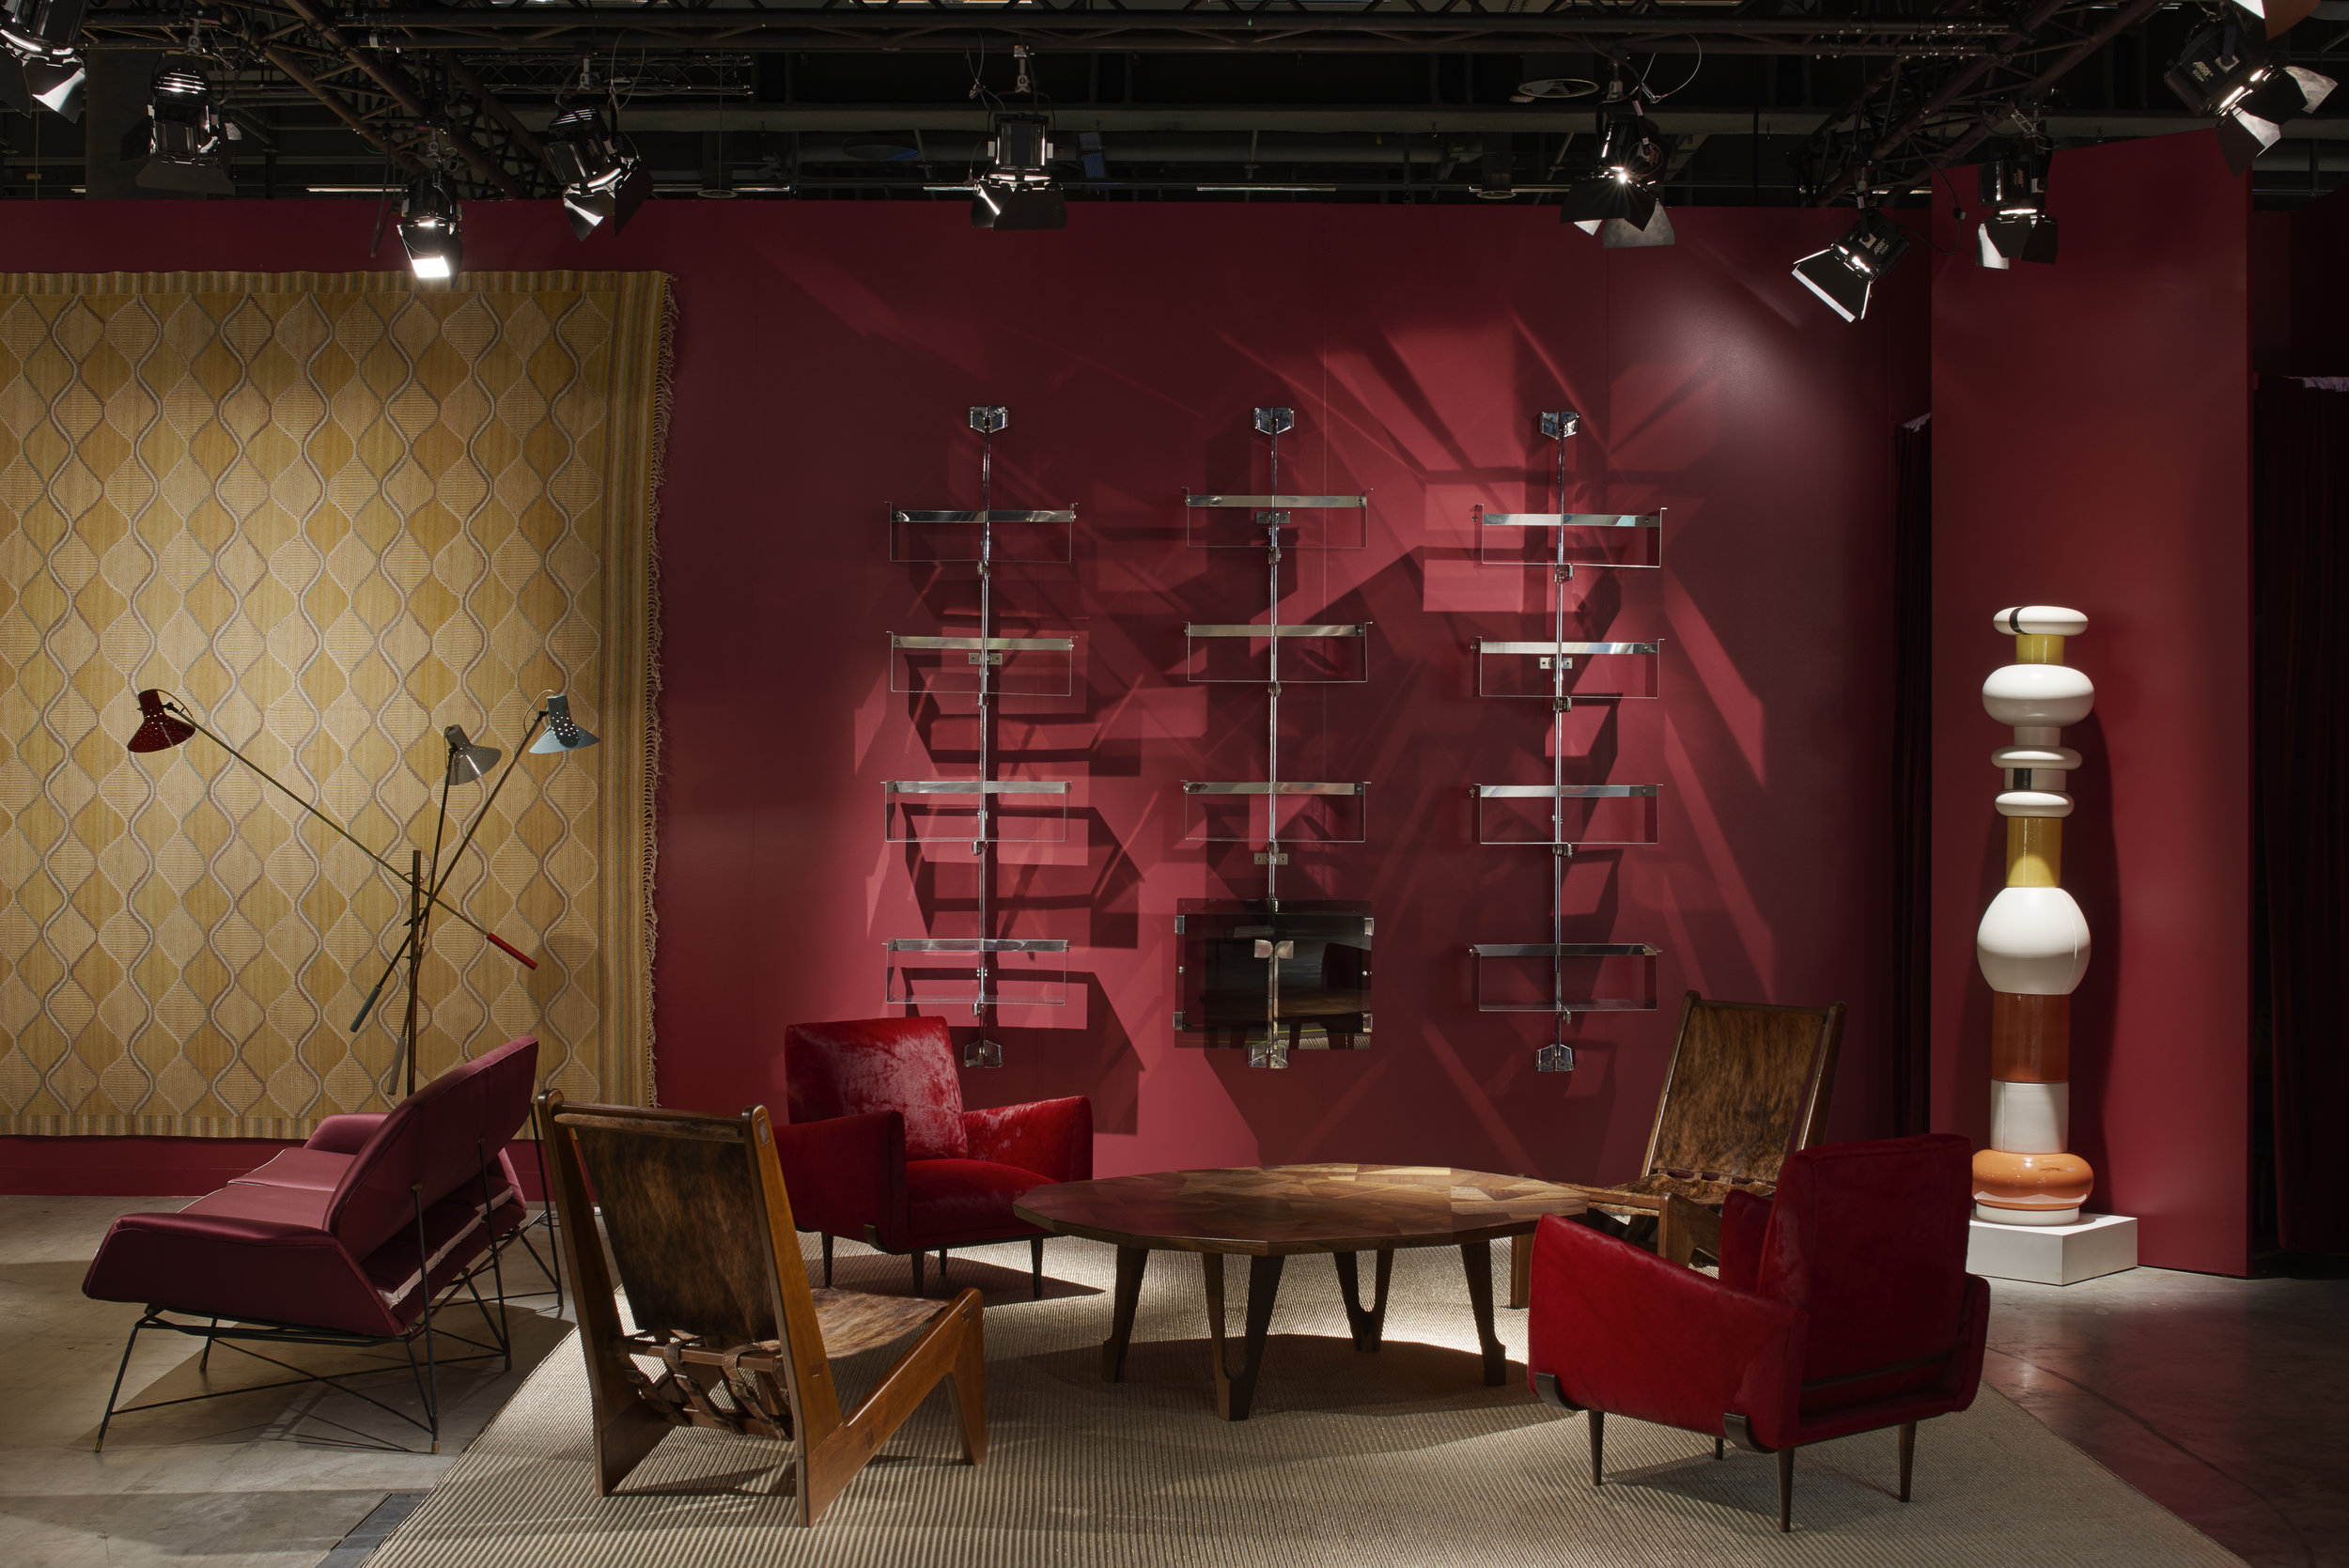 Nilufar stand at Design Miami/ Basel 2018 - on display Jorje Zalszupin's red cavalino armchairs,  Zig Zag  lounge chairs by Estúdio de Arte Palma: LBB and Palanti and off‐cut low table designed by Martino Gamper